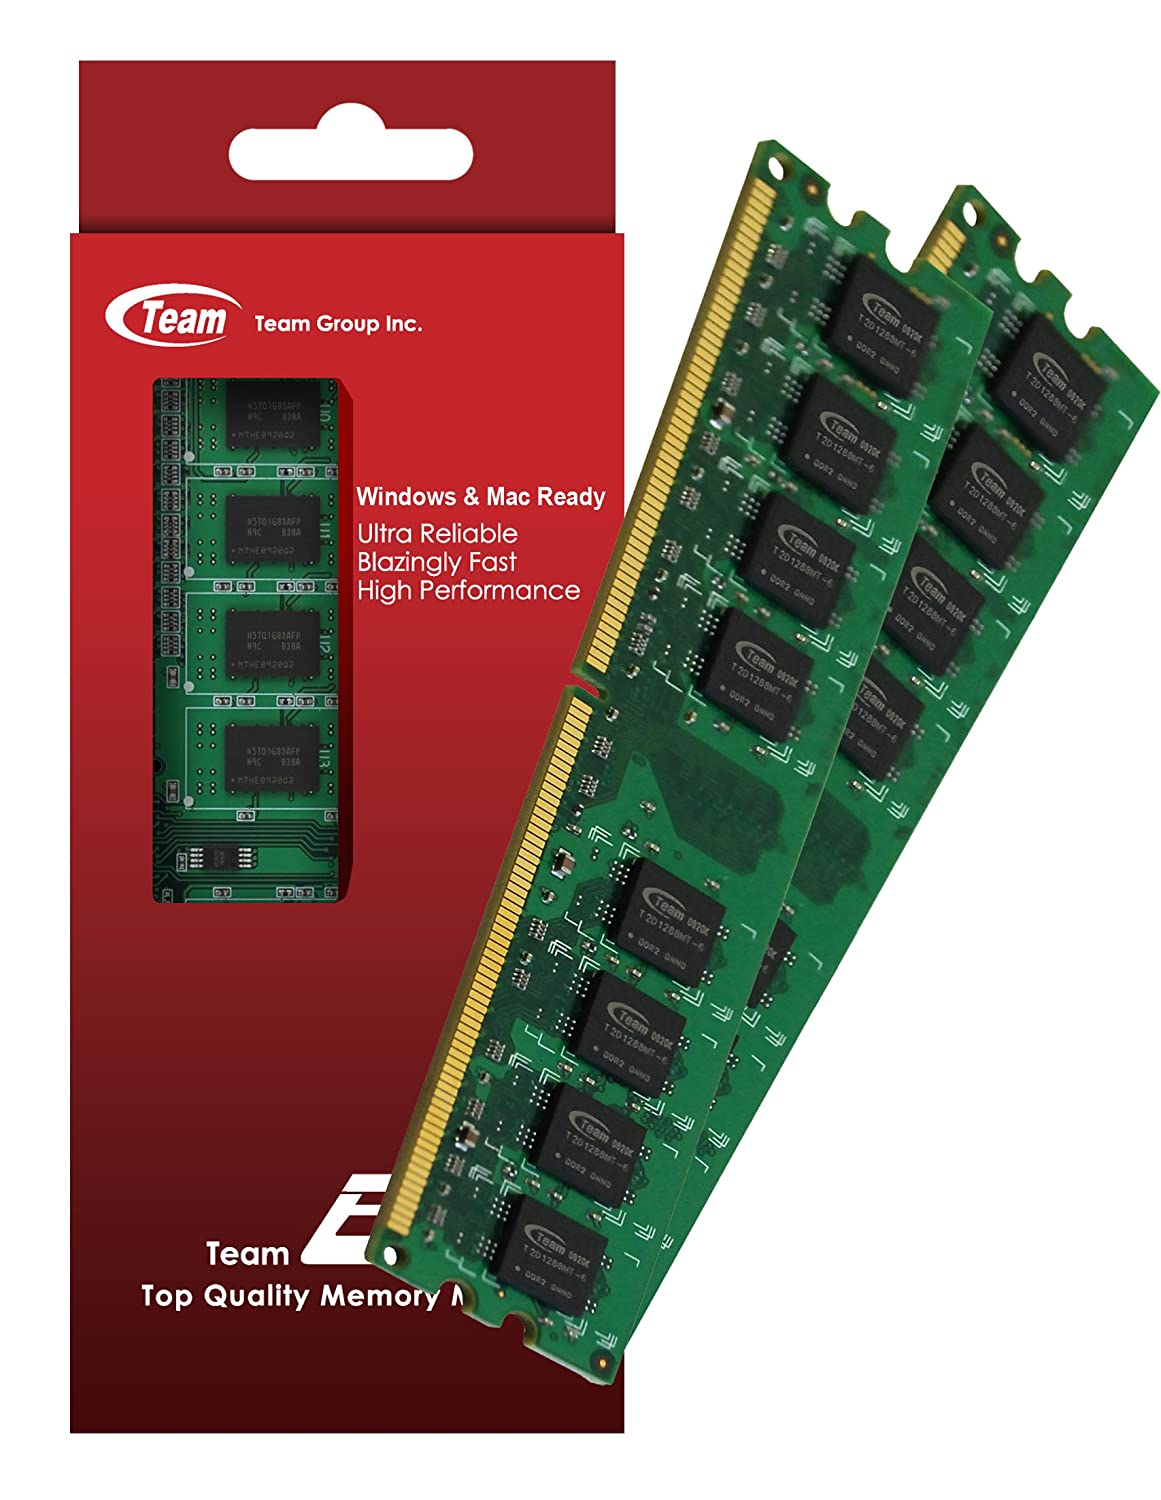 4GB (2GBx2) Team High Performance Memory RAM Upgrade For Dell XPS 720 H2C 9150 One 20. The Memory Kit comes with Life Time Warranty. 4gb 44t1586 vlp rdimm pc3 10600r hs22 hs22v server memory one year warranty